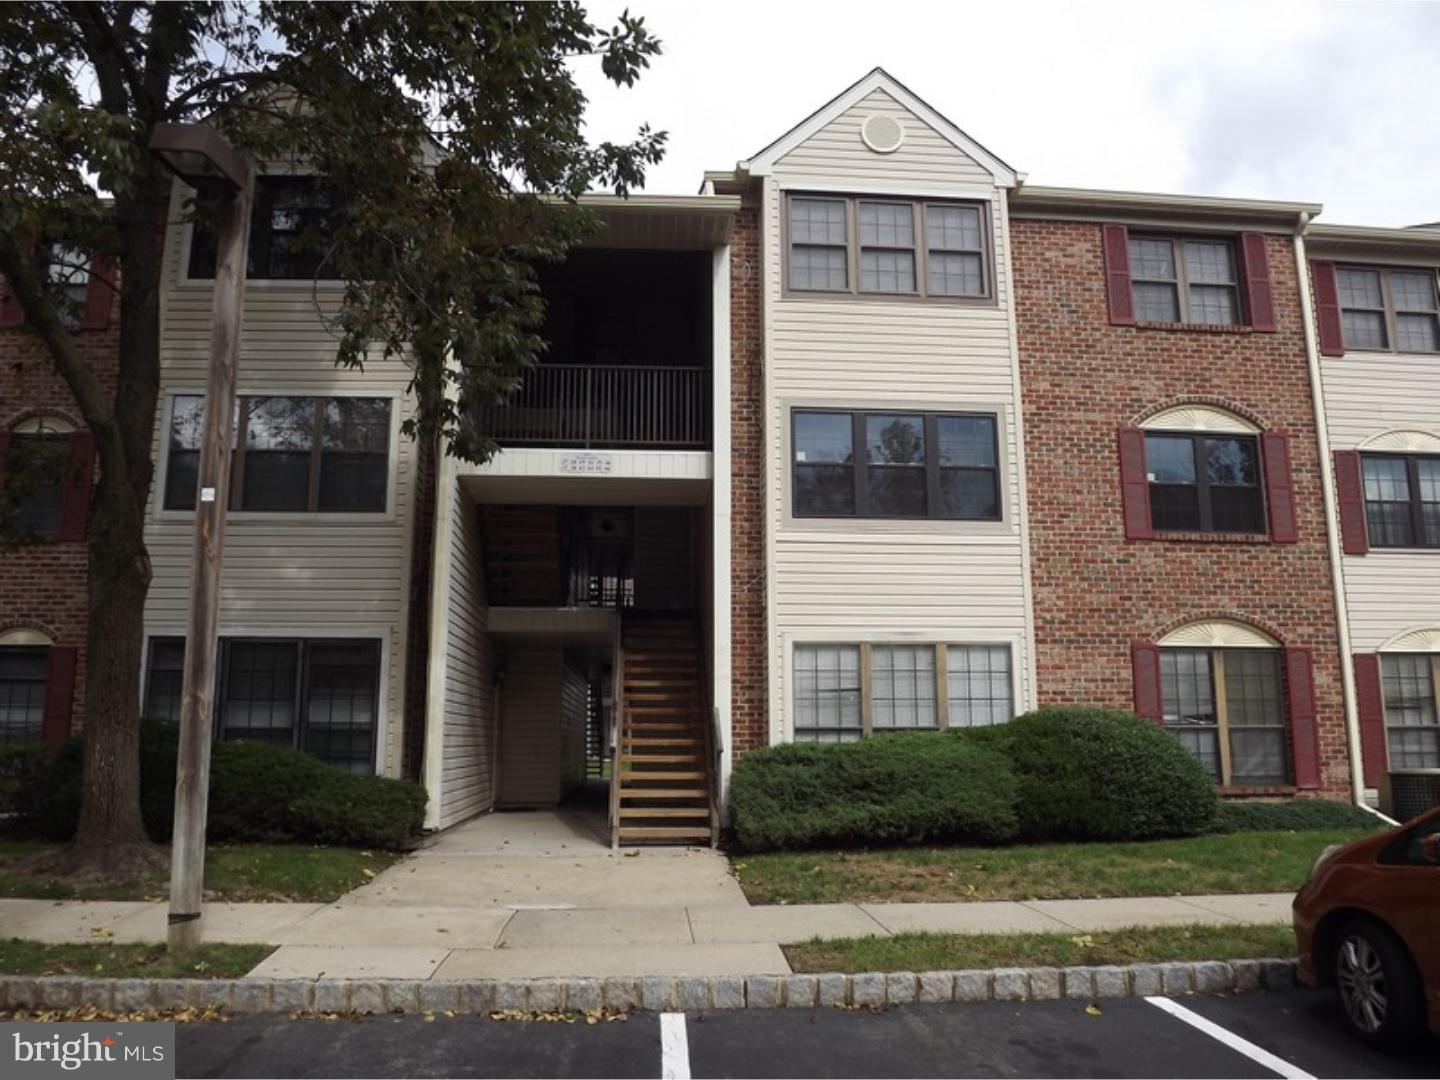 Single Family Home for Sale at 27 FEILER Court Lawrenceville, New Jersey 08648 United StatesMunicipality: Lawrence Township